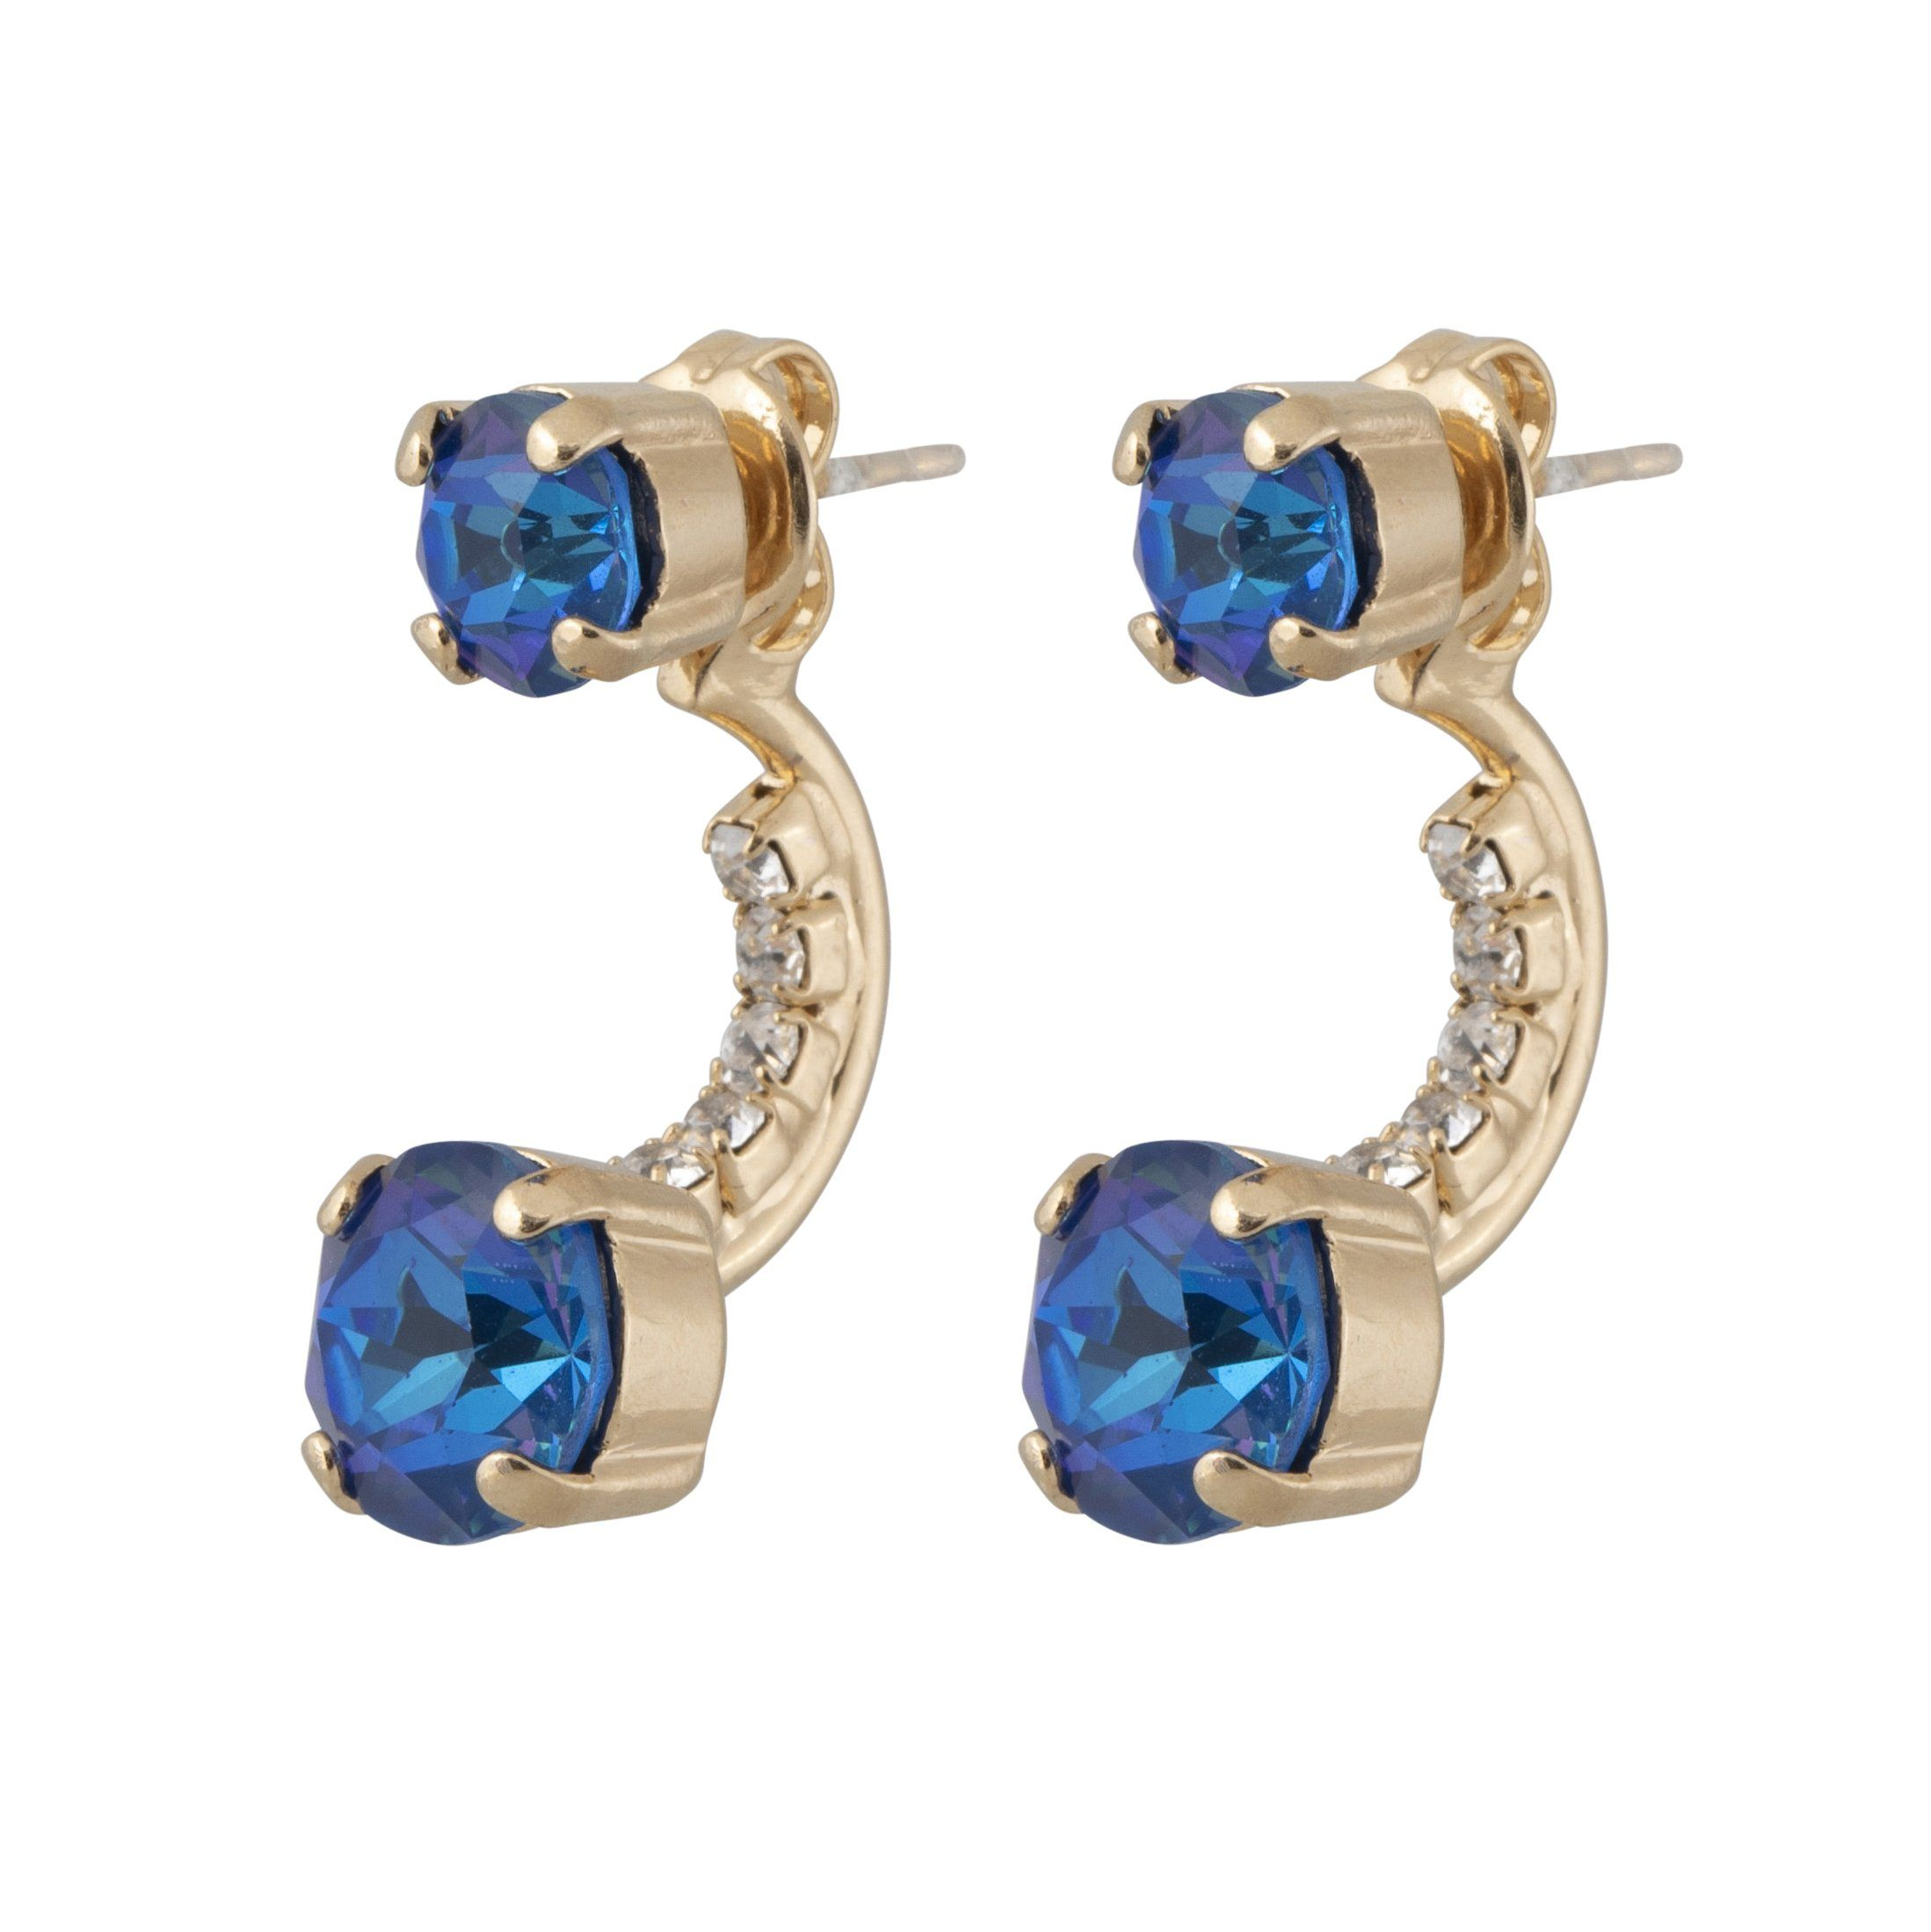 In Between Earrings - Royal Blue